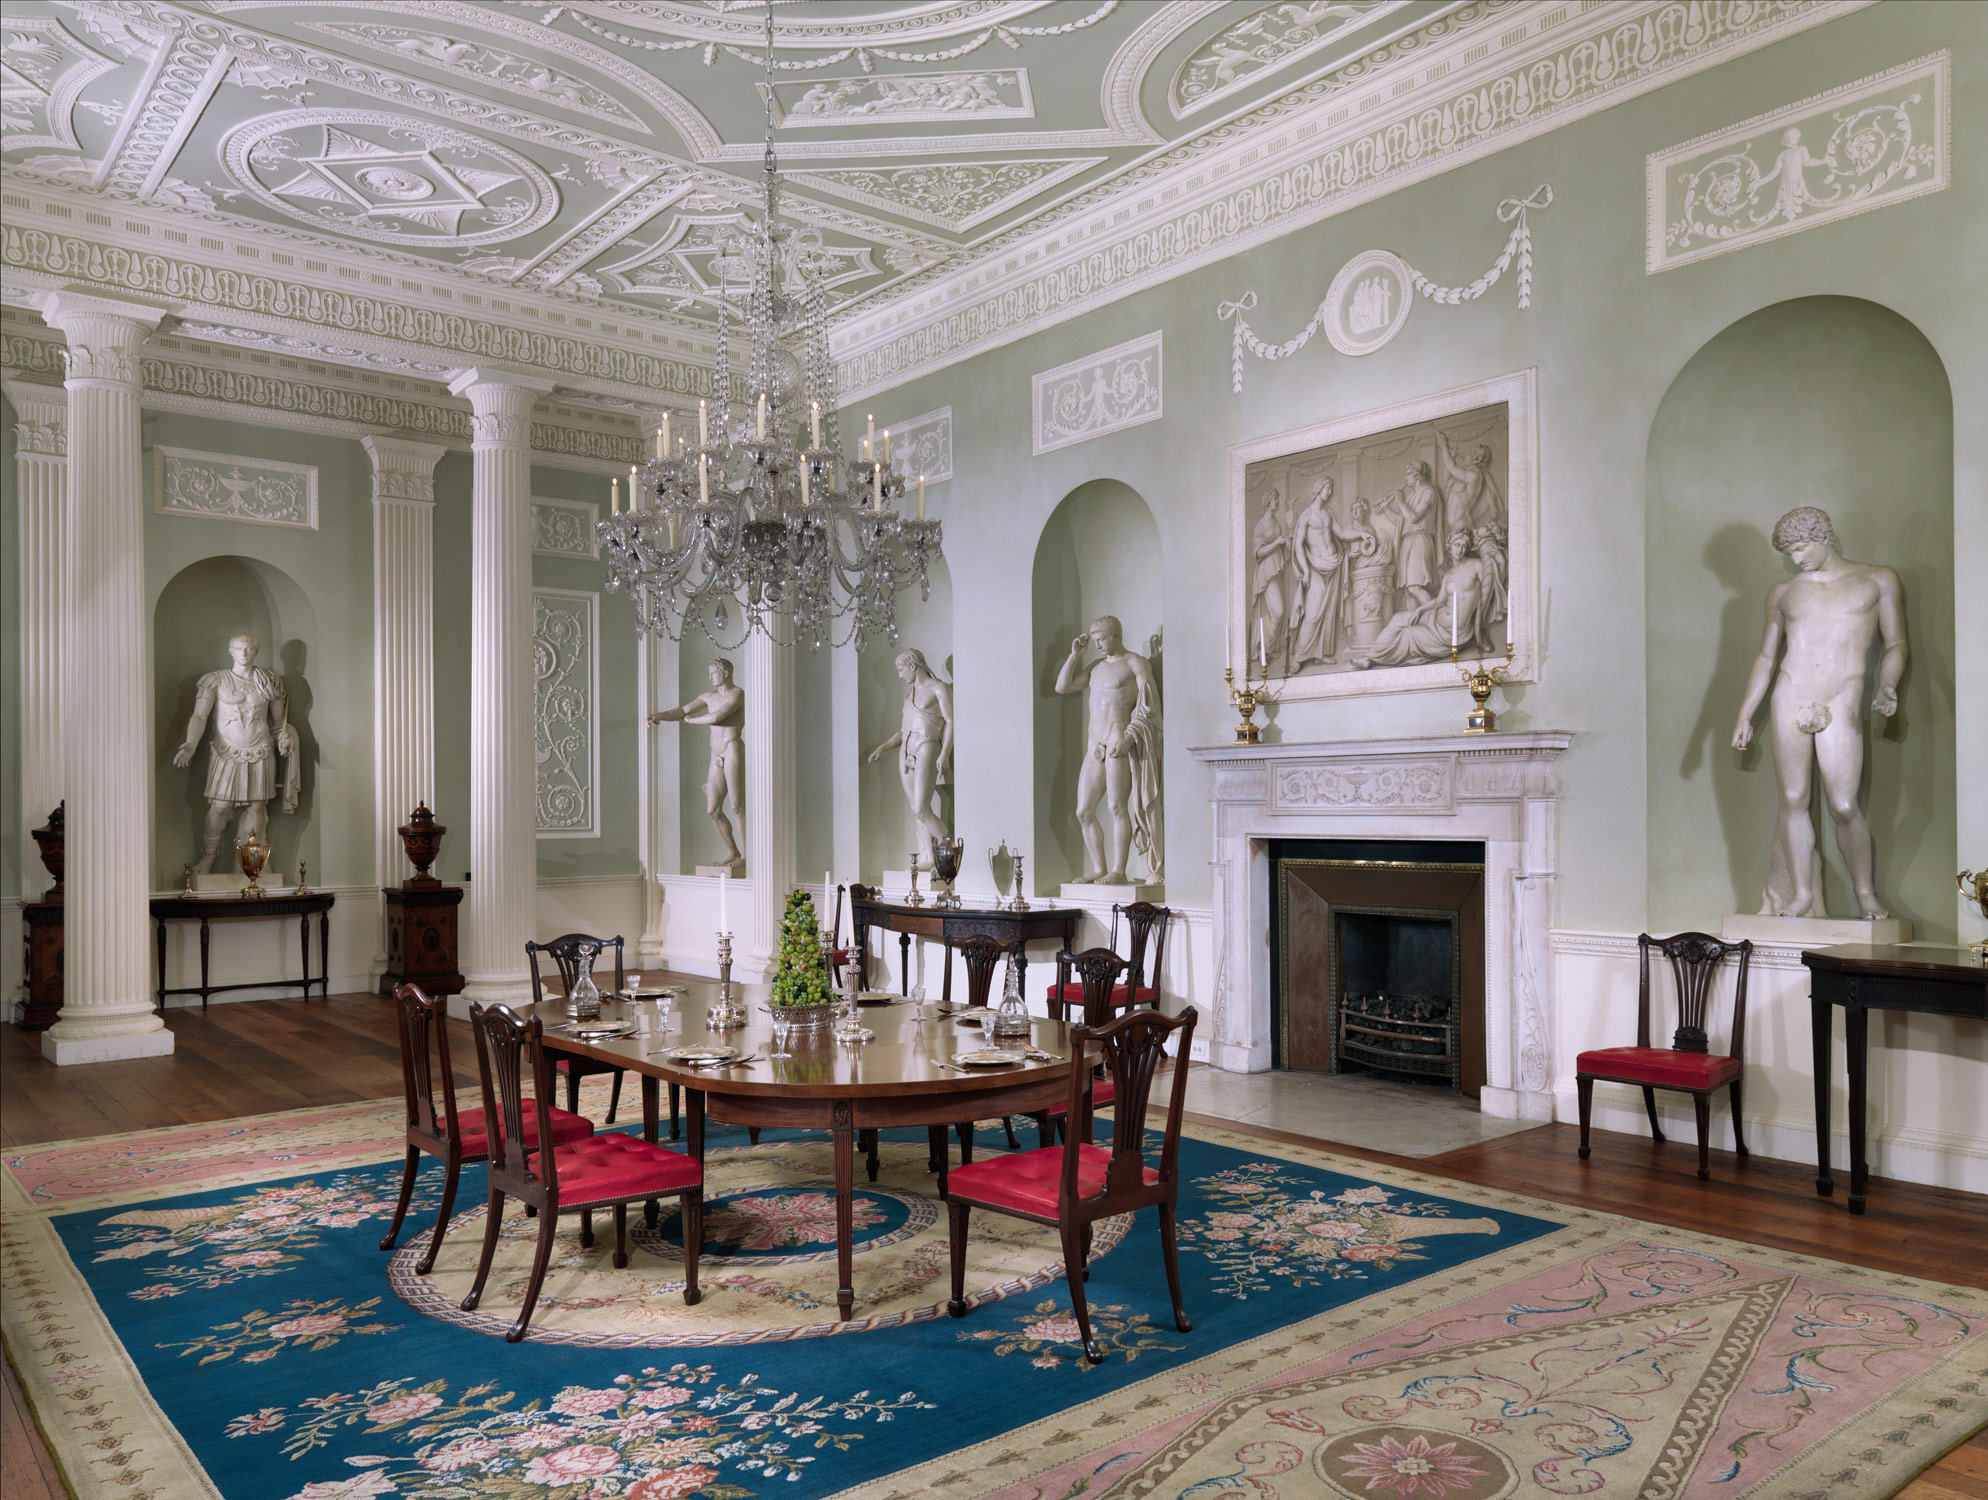 Dining room from Lansdowne House. Interior Design in England  1600 1800   Essay   Heilbrunn Timeline